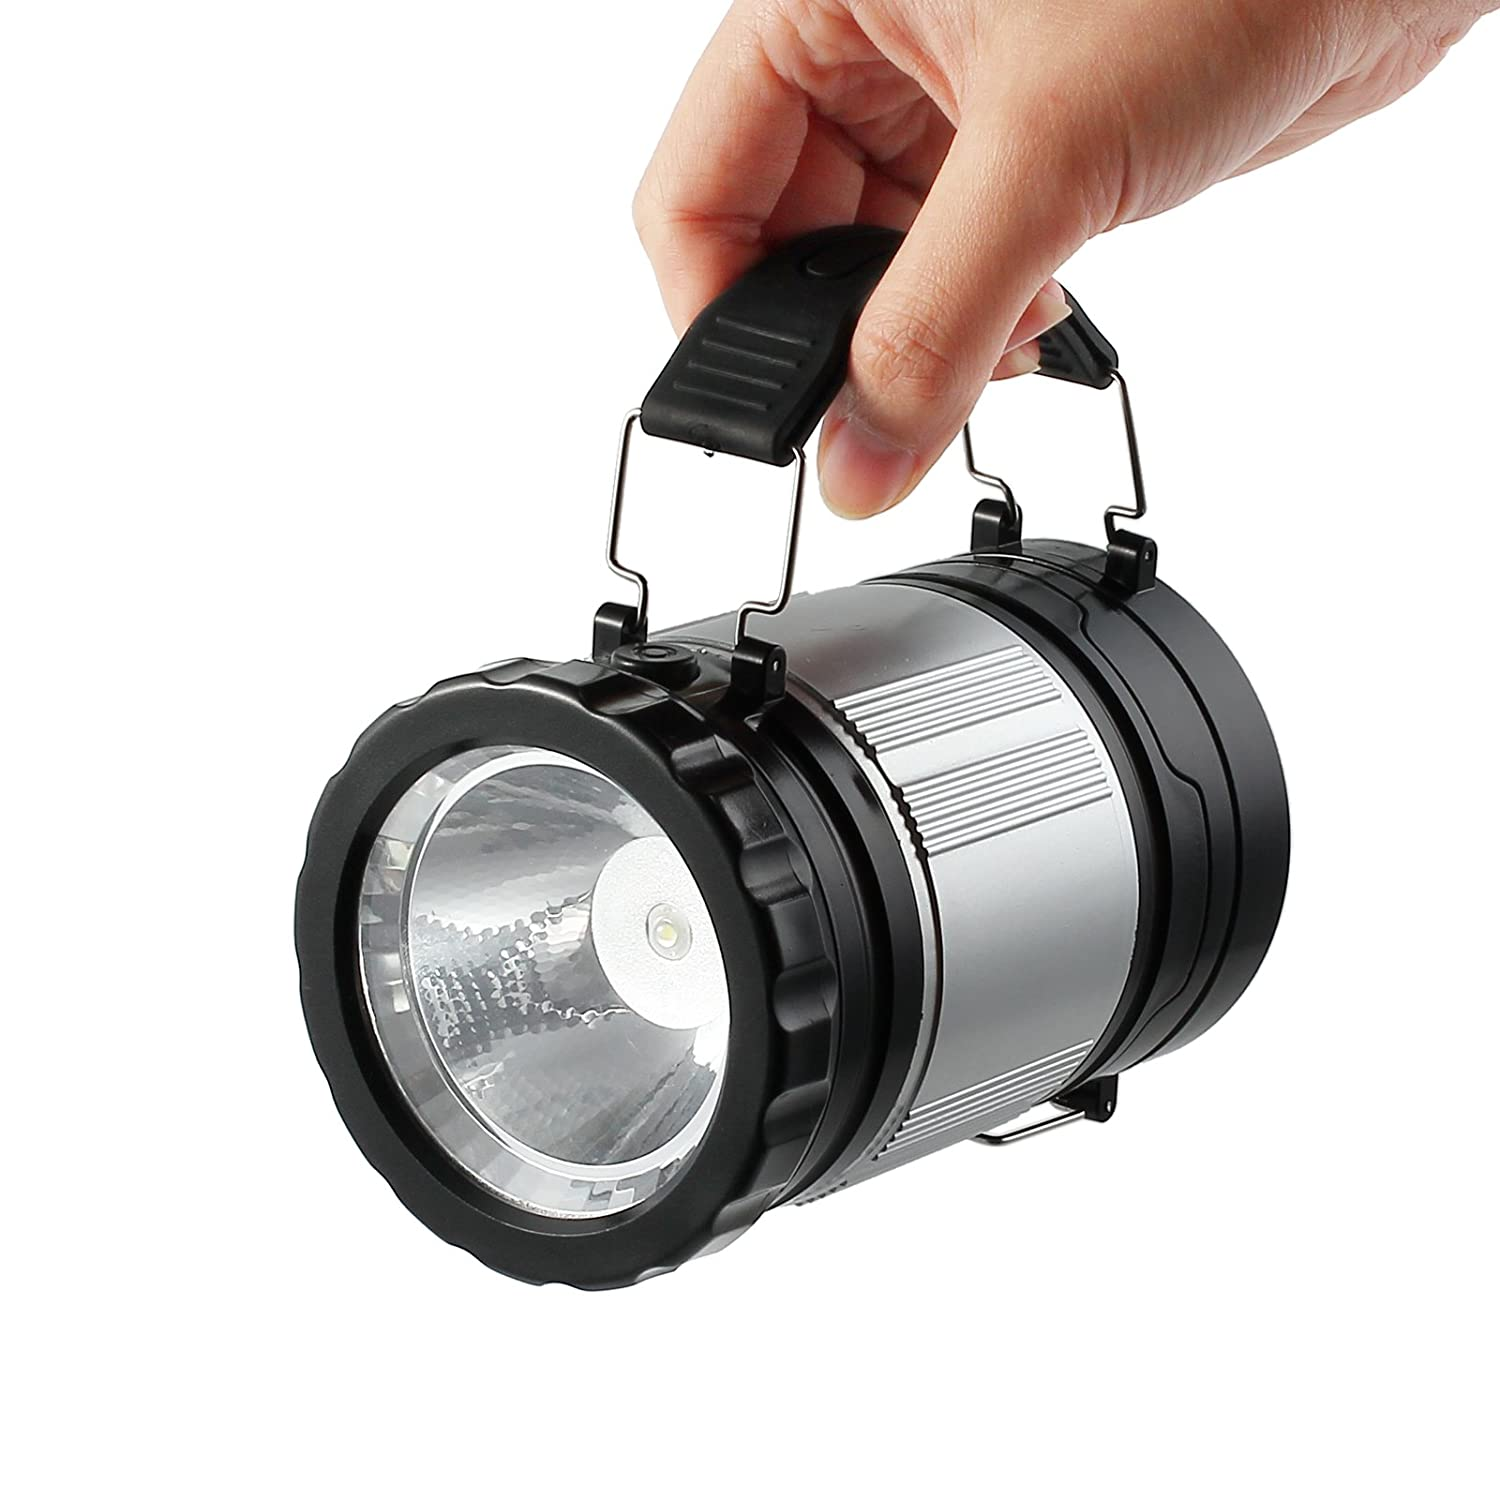 Justech Camping Lights LED Camping Lantern Torch Handheld Flashing 2-in-1 Camp Lamp Portable Ultra Bright for Camping Hiking Fishing Backpacking Outdoor